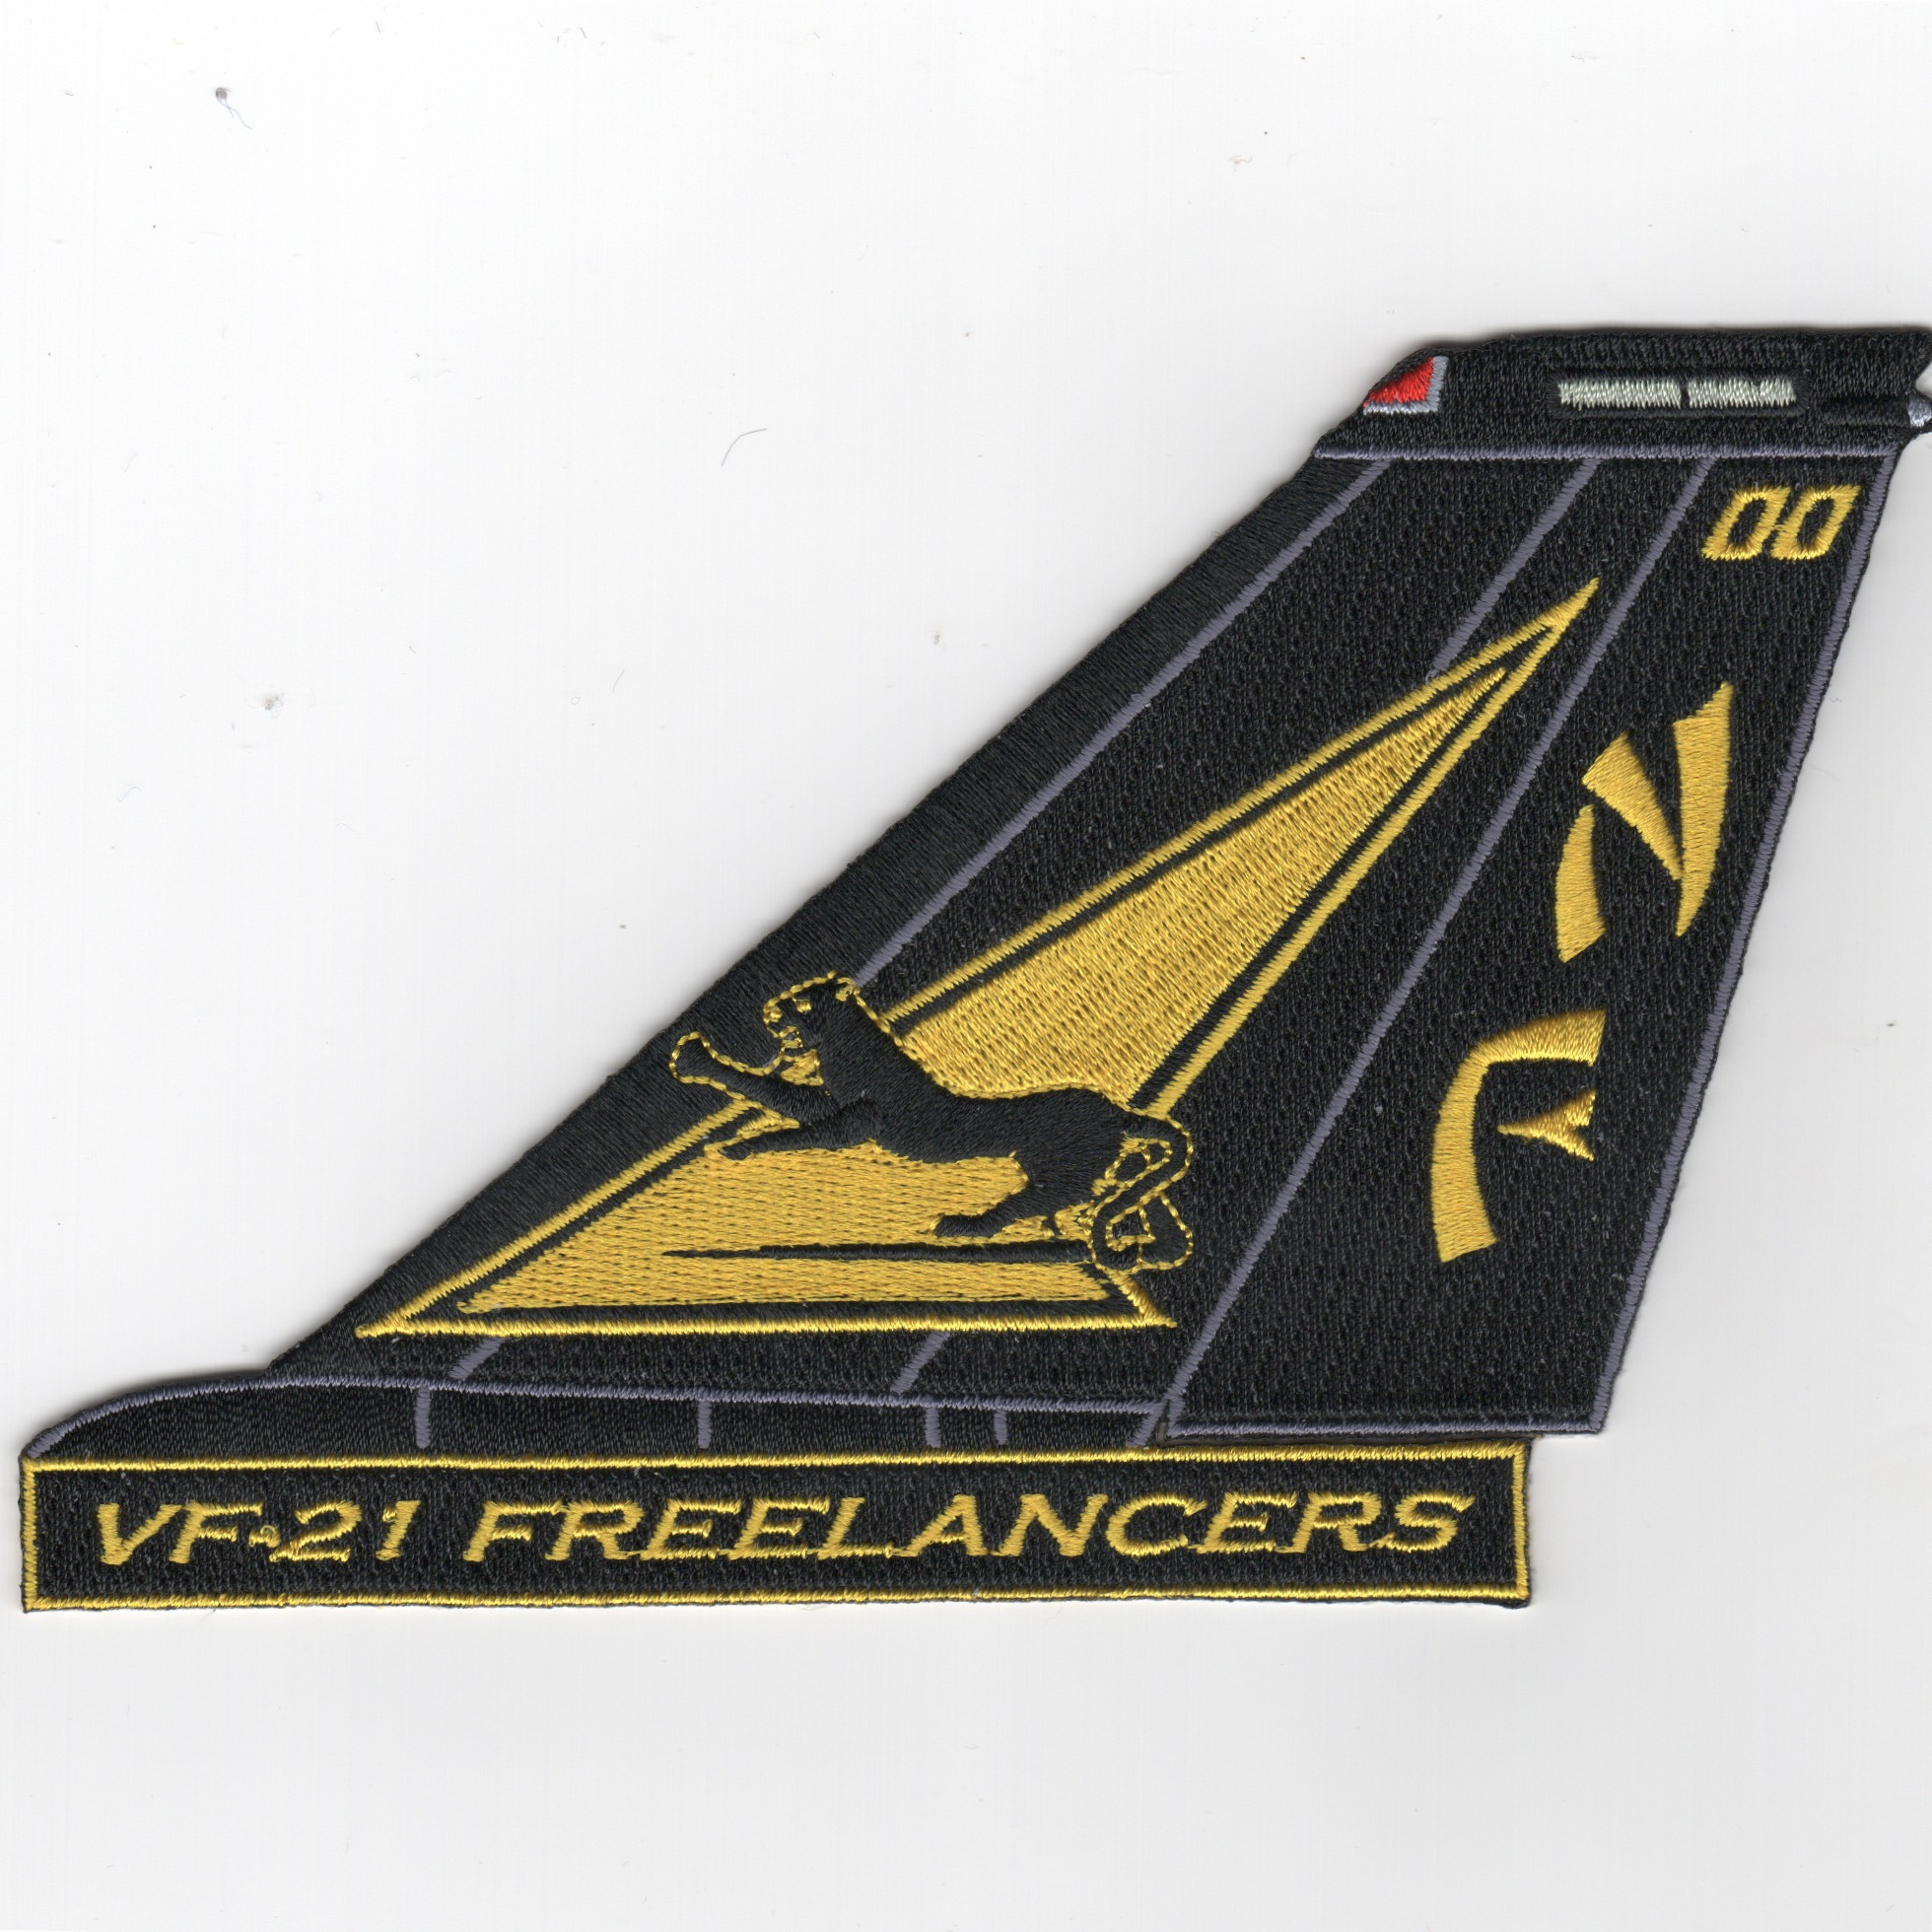 VF-21 F-14 Tomcat TailFin (Text)